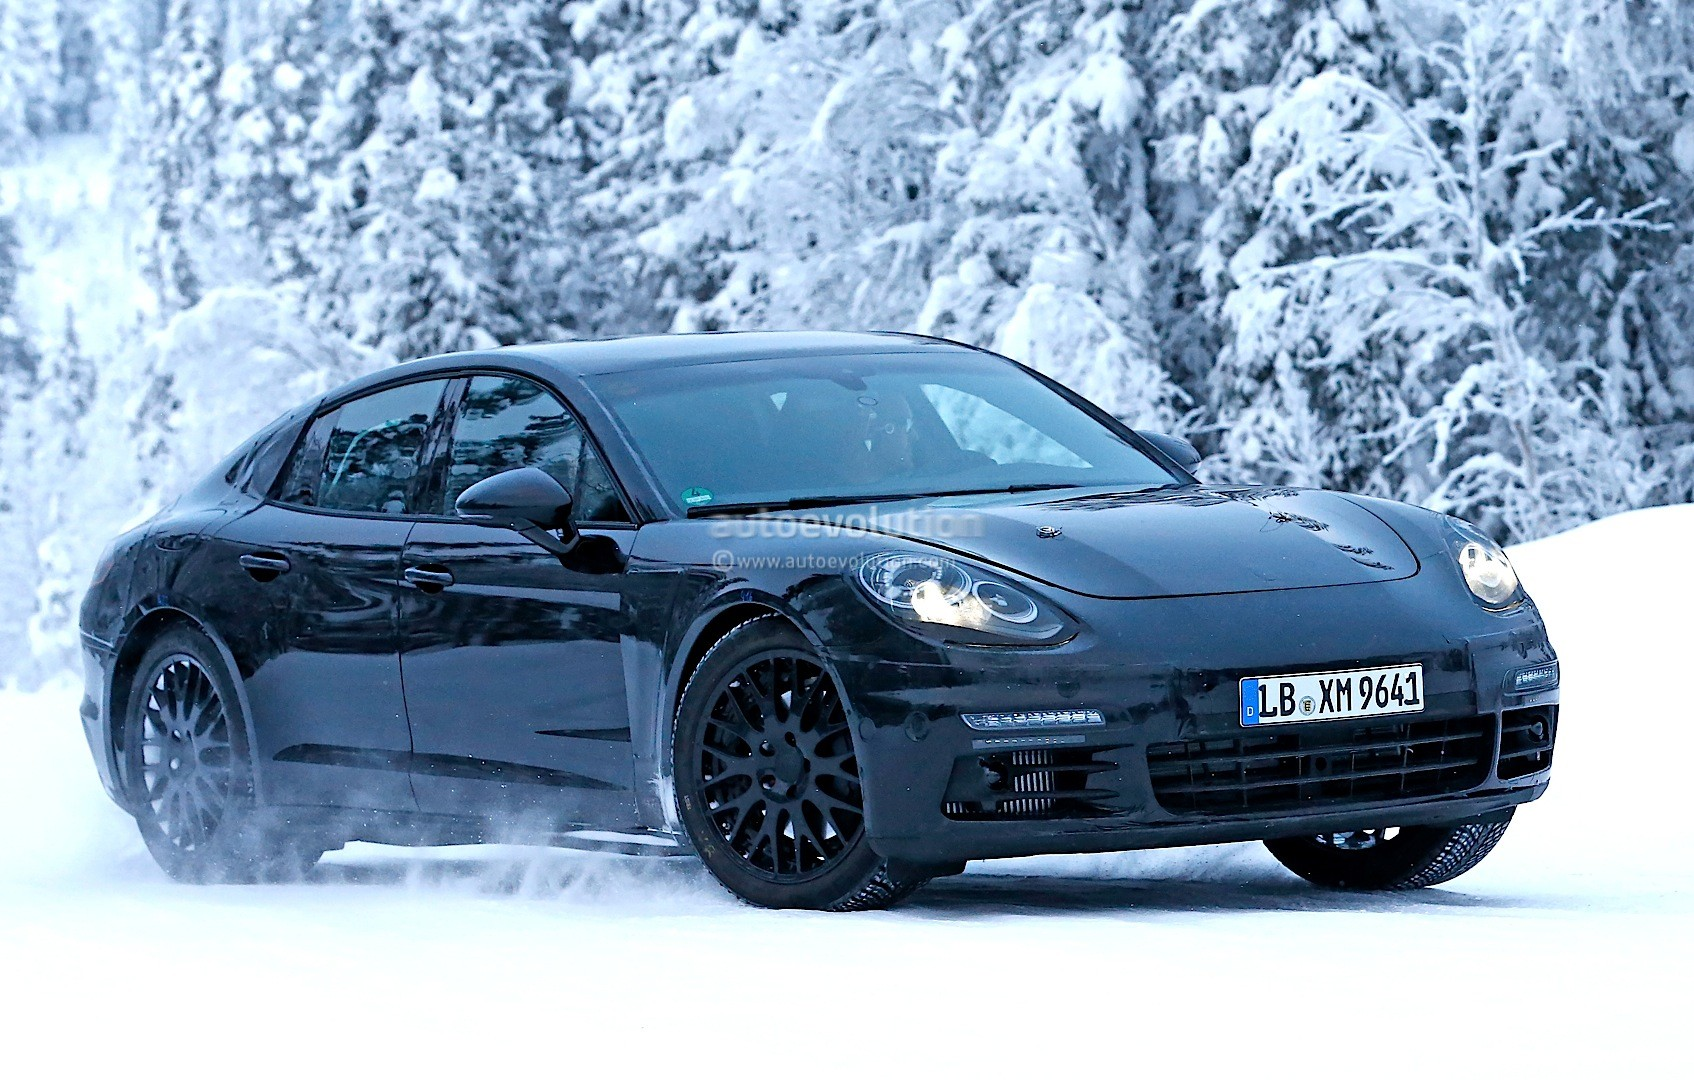 2016 Porsche Panamera Gts >> 2016 Porsche Panamera Spied Playing in the Snow ...